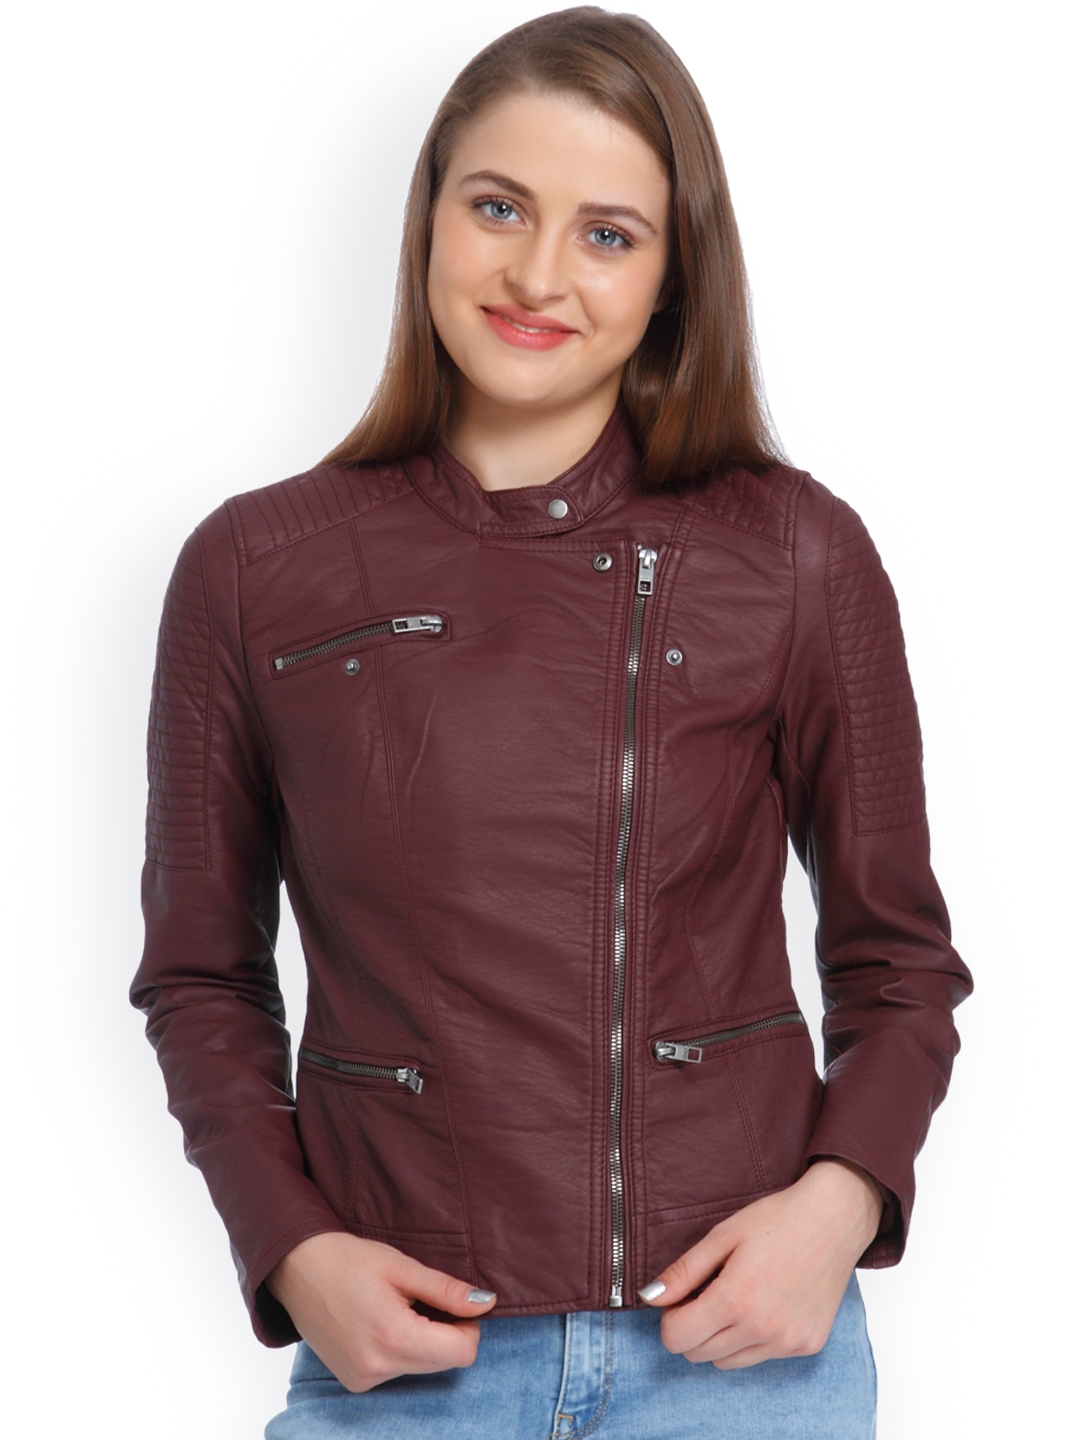 a596468fb86aa ONLY Women Maroon Solid Biker Jacket. This product is already at its best  price